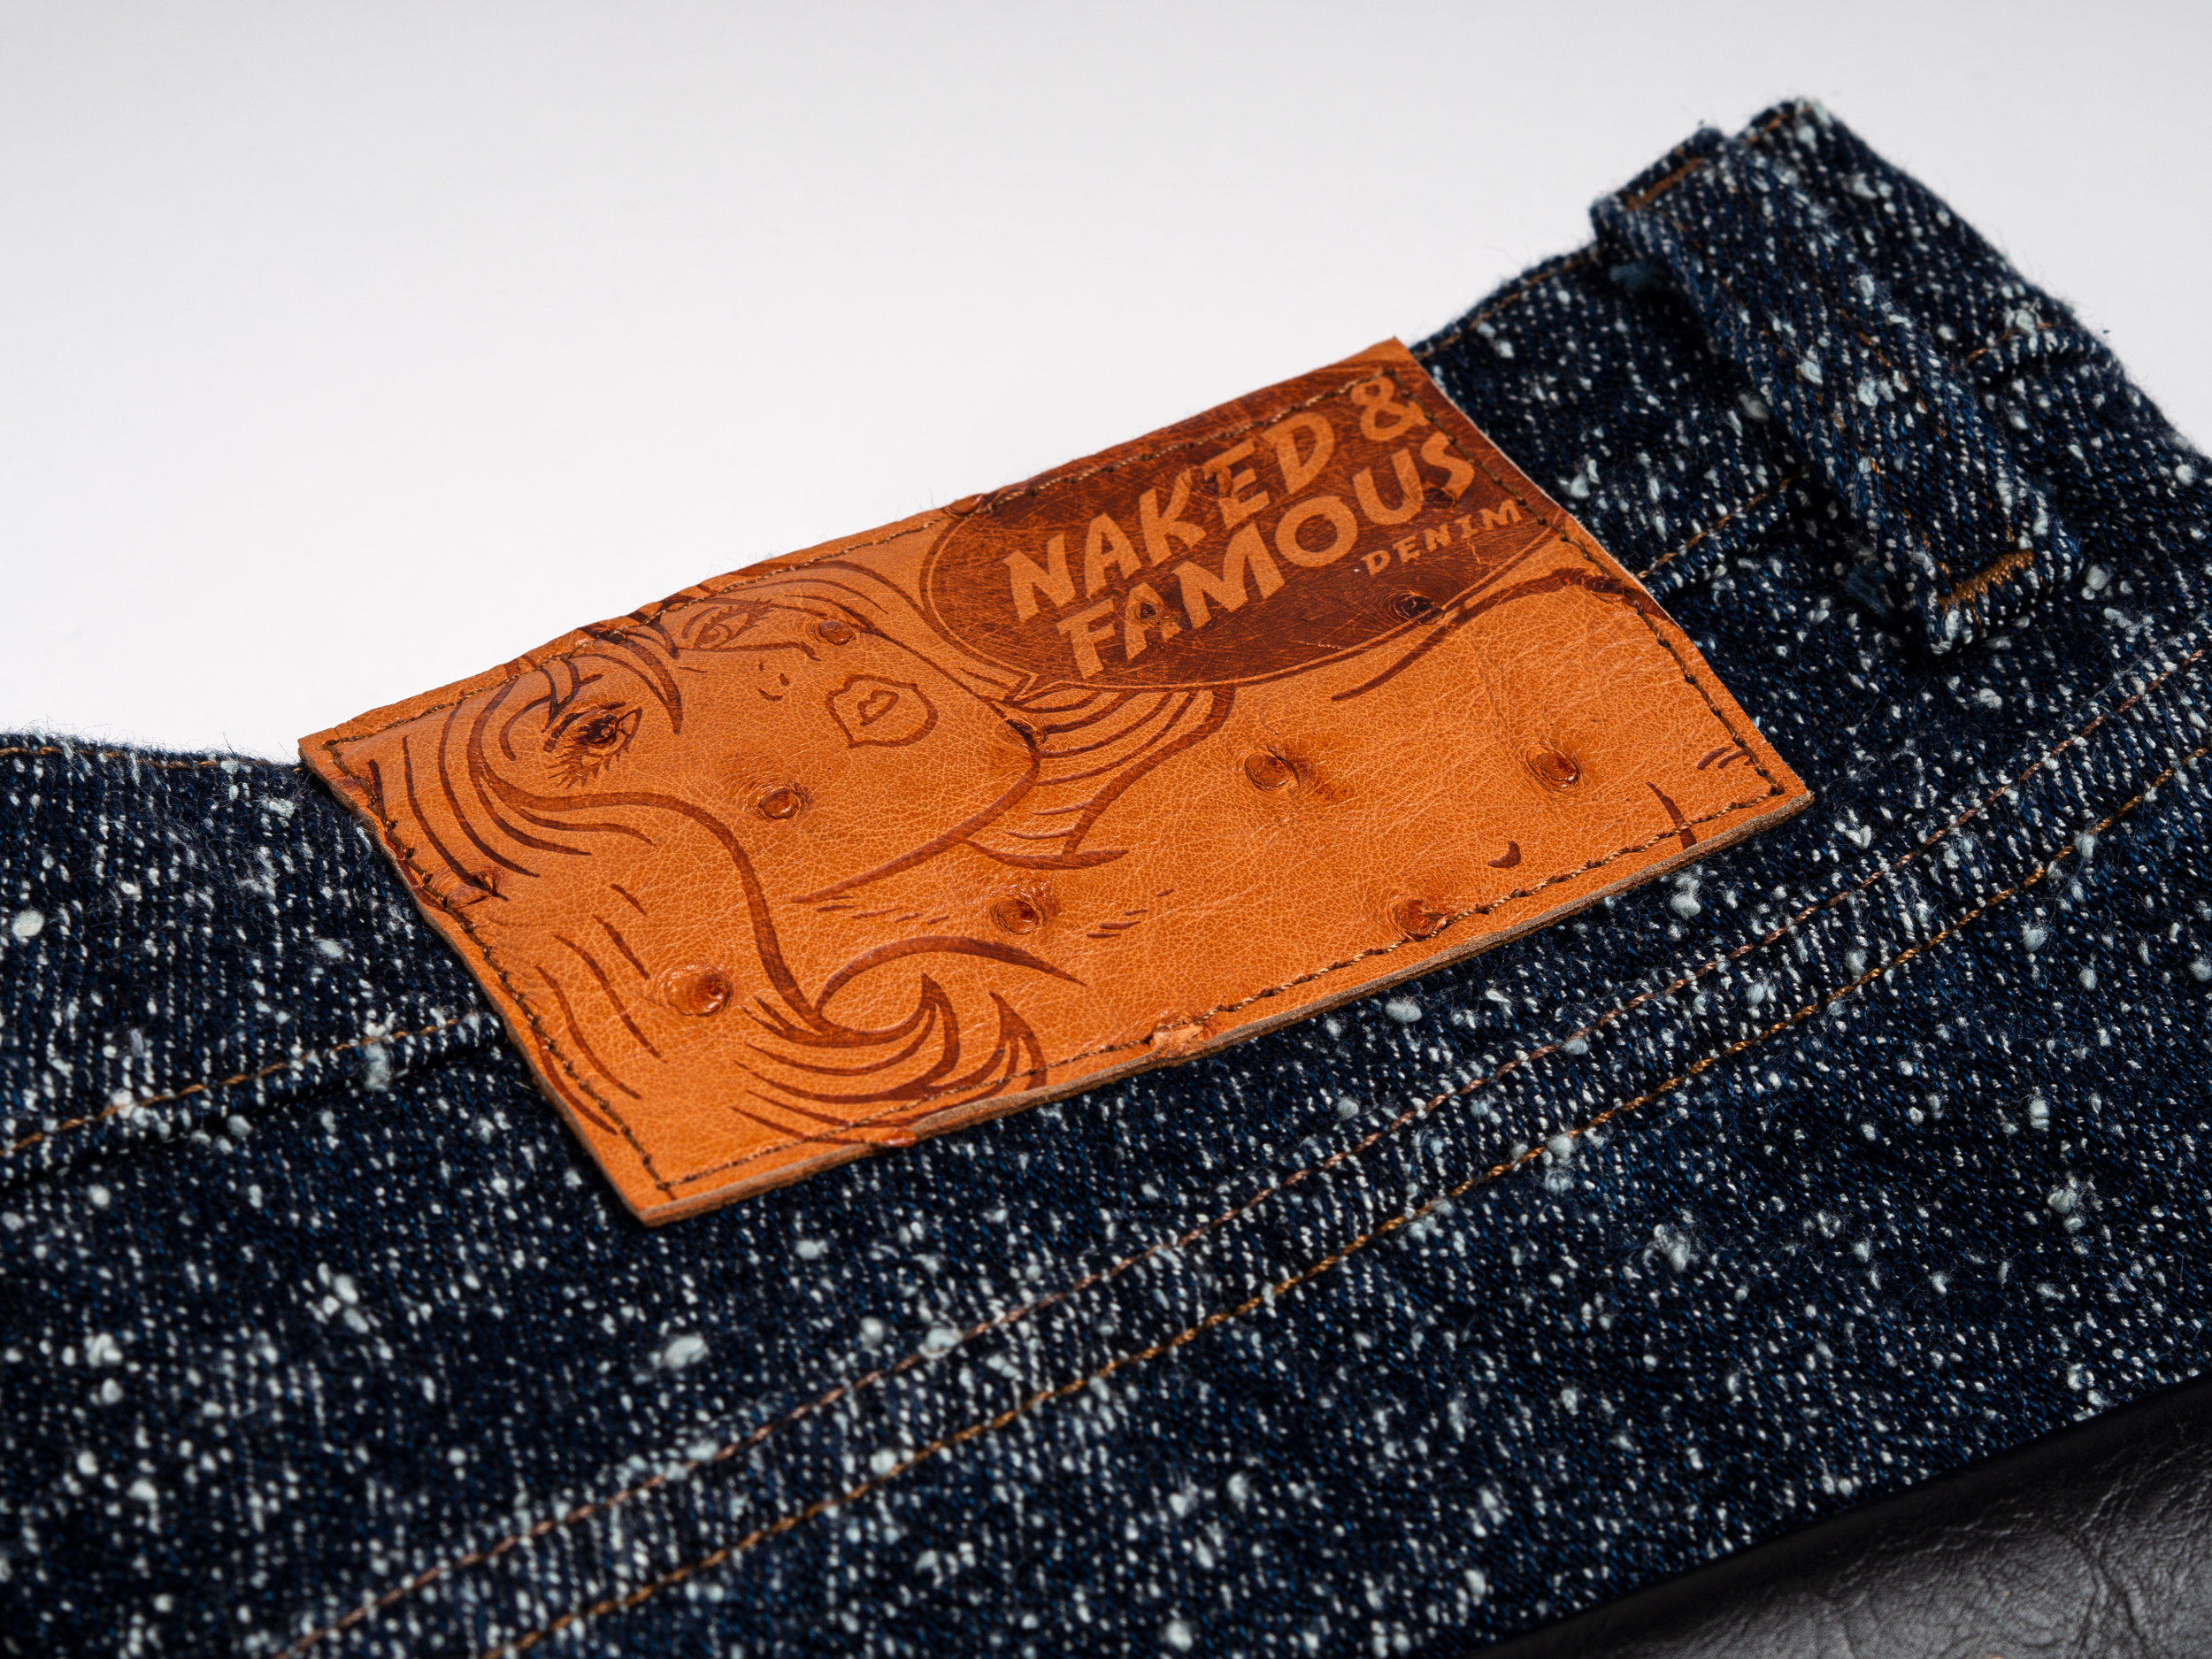 NAKED & FAMOUS LORD OF NEP SELVEDGE - The Lord of Nep Selvedge features a highly nepped 14.5oz Japanese denim which is made with a low tension weave, and deliberate knotting of the cotton yarn. As a result, the denim has a very three-dimensional appearance, and an extremely soft hand feel. The jeans are finished with an ostrich leather patch.